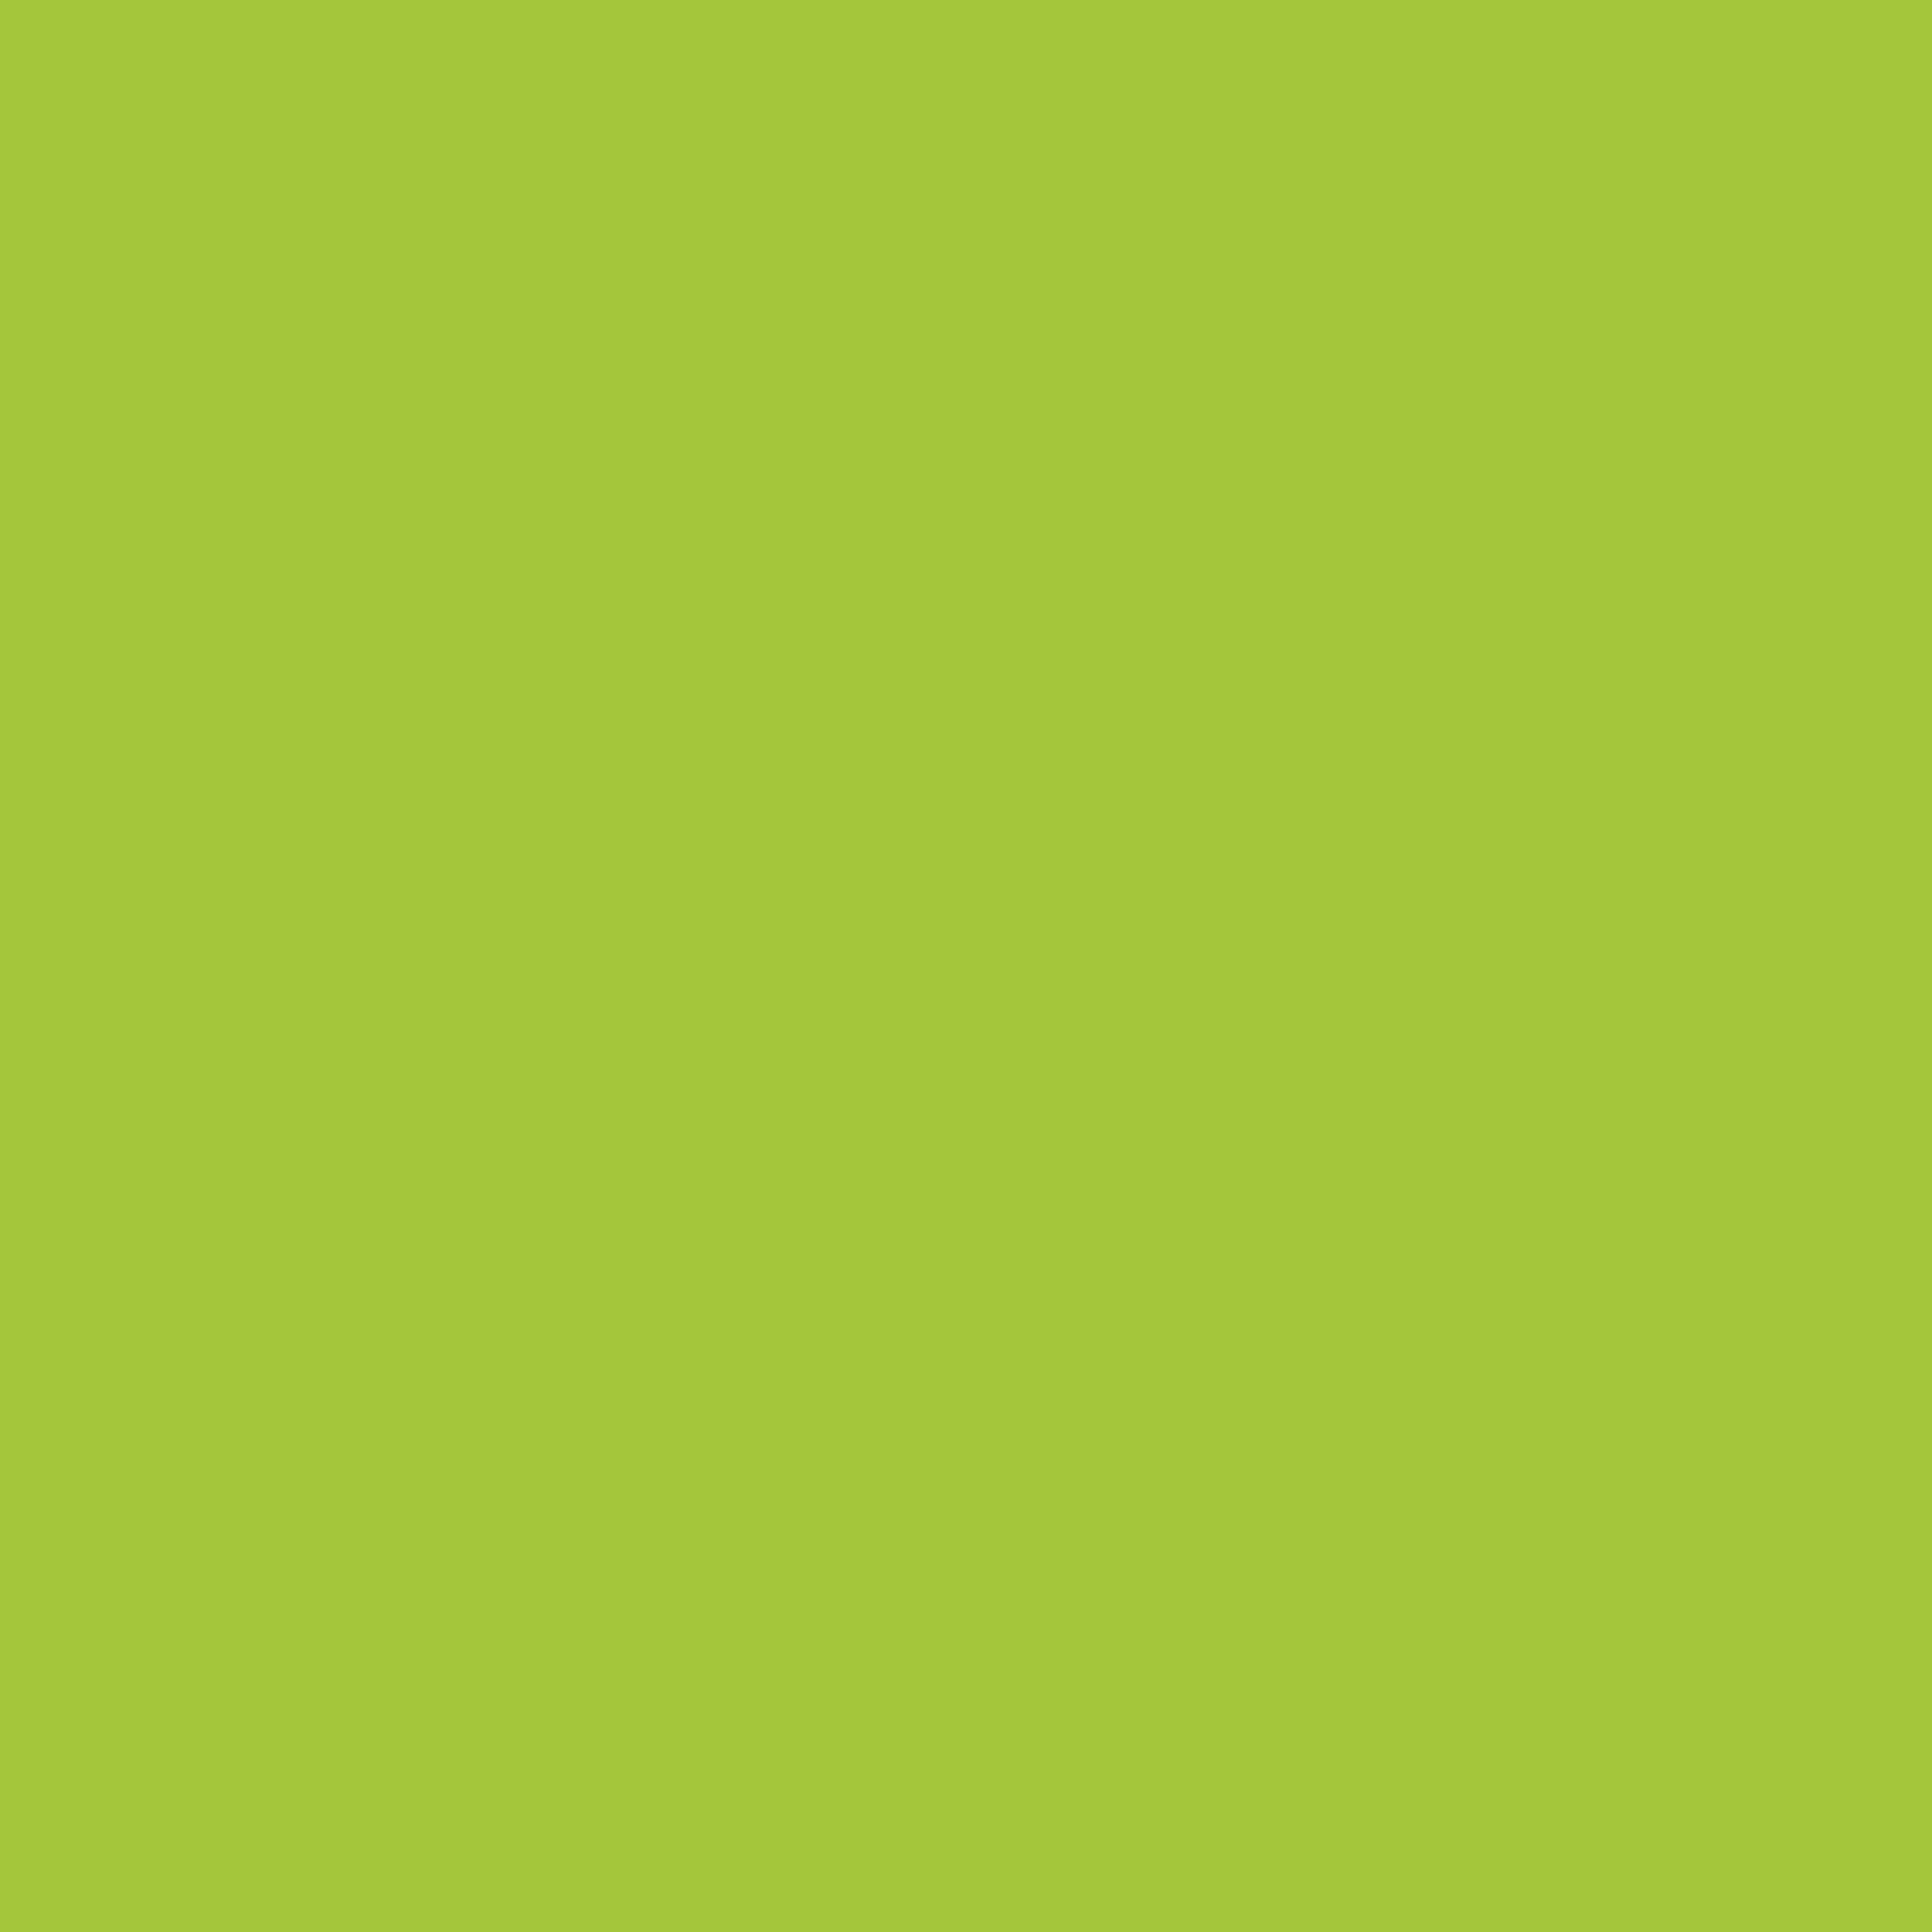 2732x2732 Android Green Solid Color Background